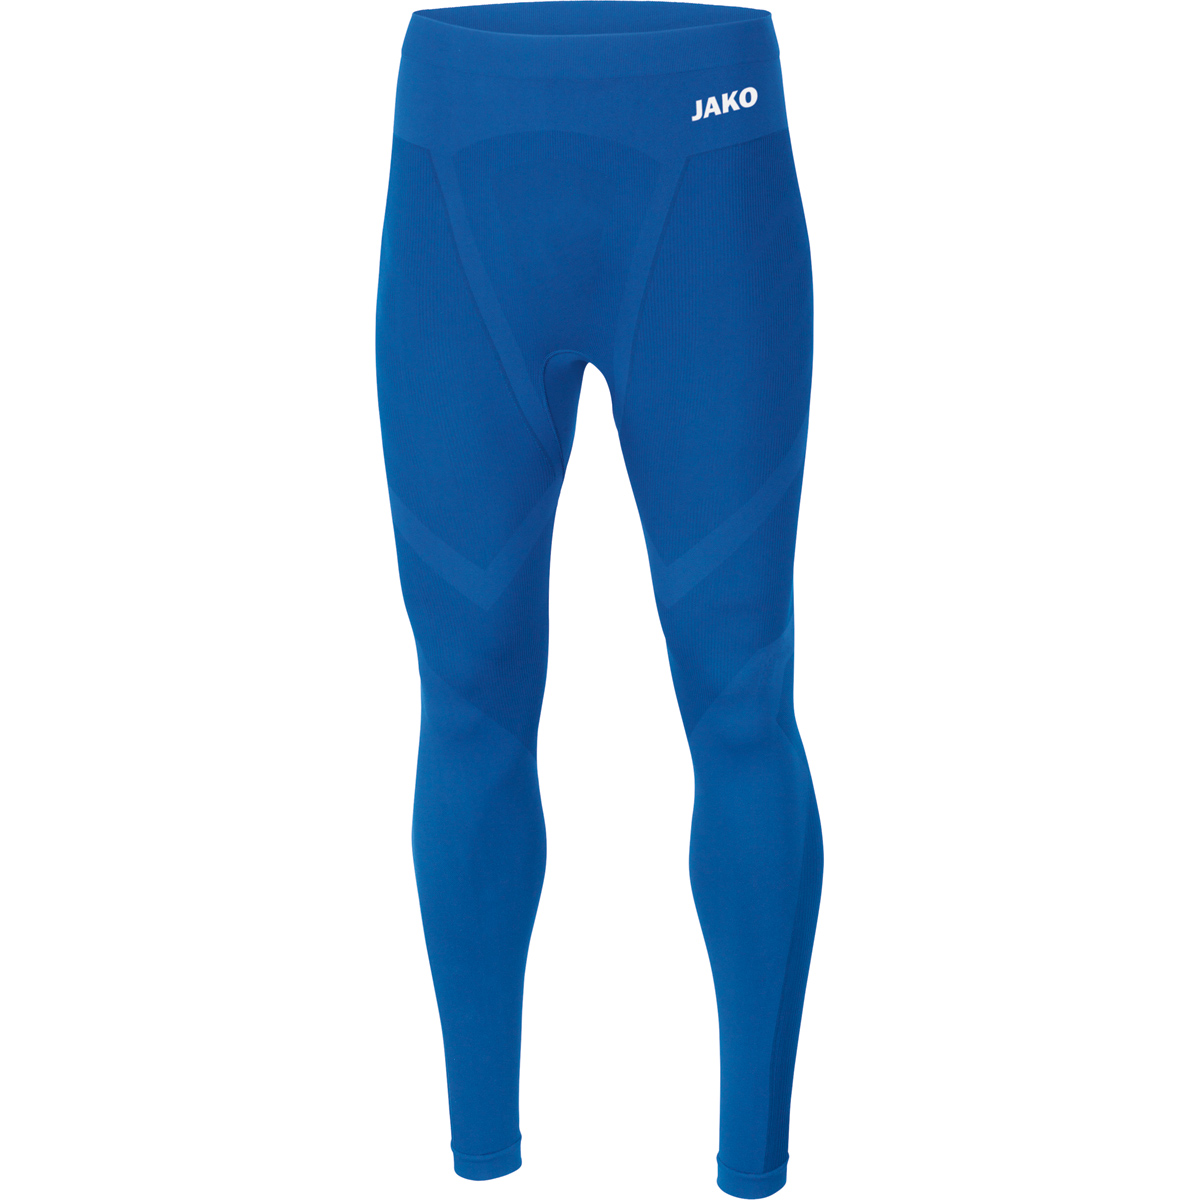 Jako Long Tight Comfort 2.0 Kinder 6555  | div. Größen / Farben